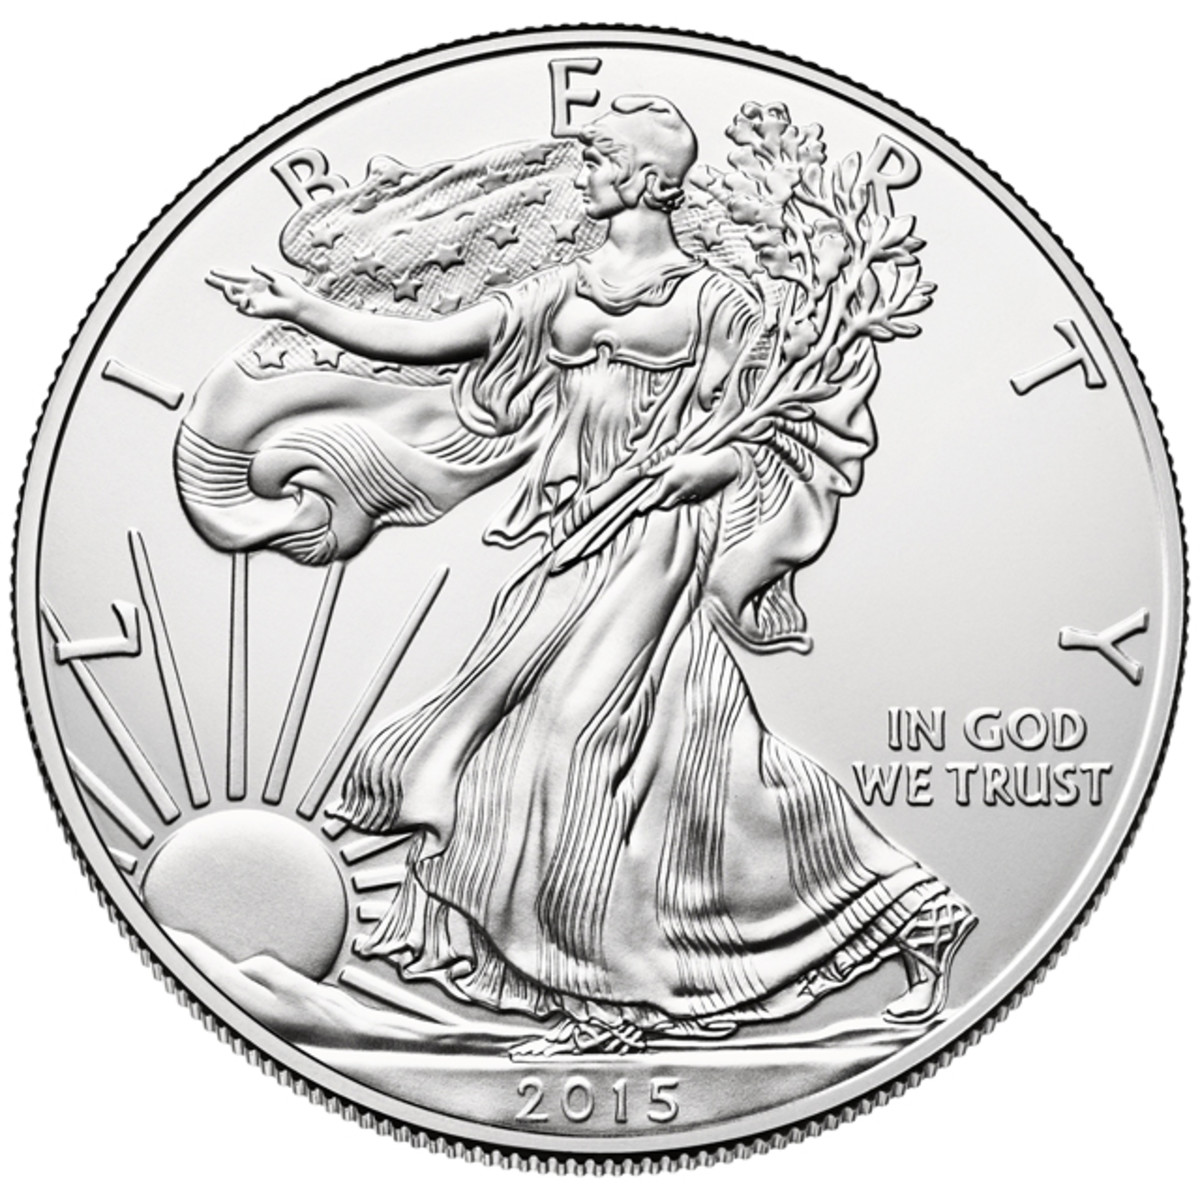 The Mint reported that Authorized Purchasers had purchased the Mint's stock of silver Eagles.